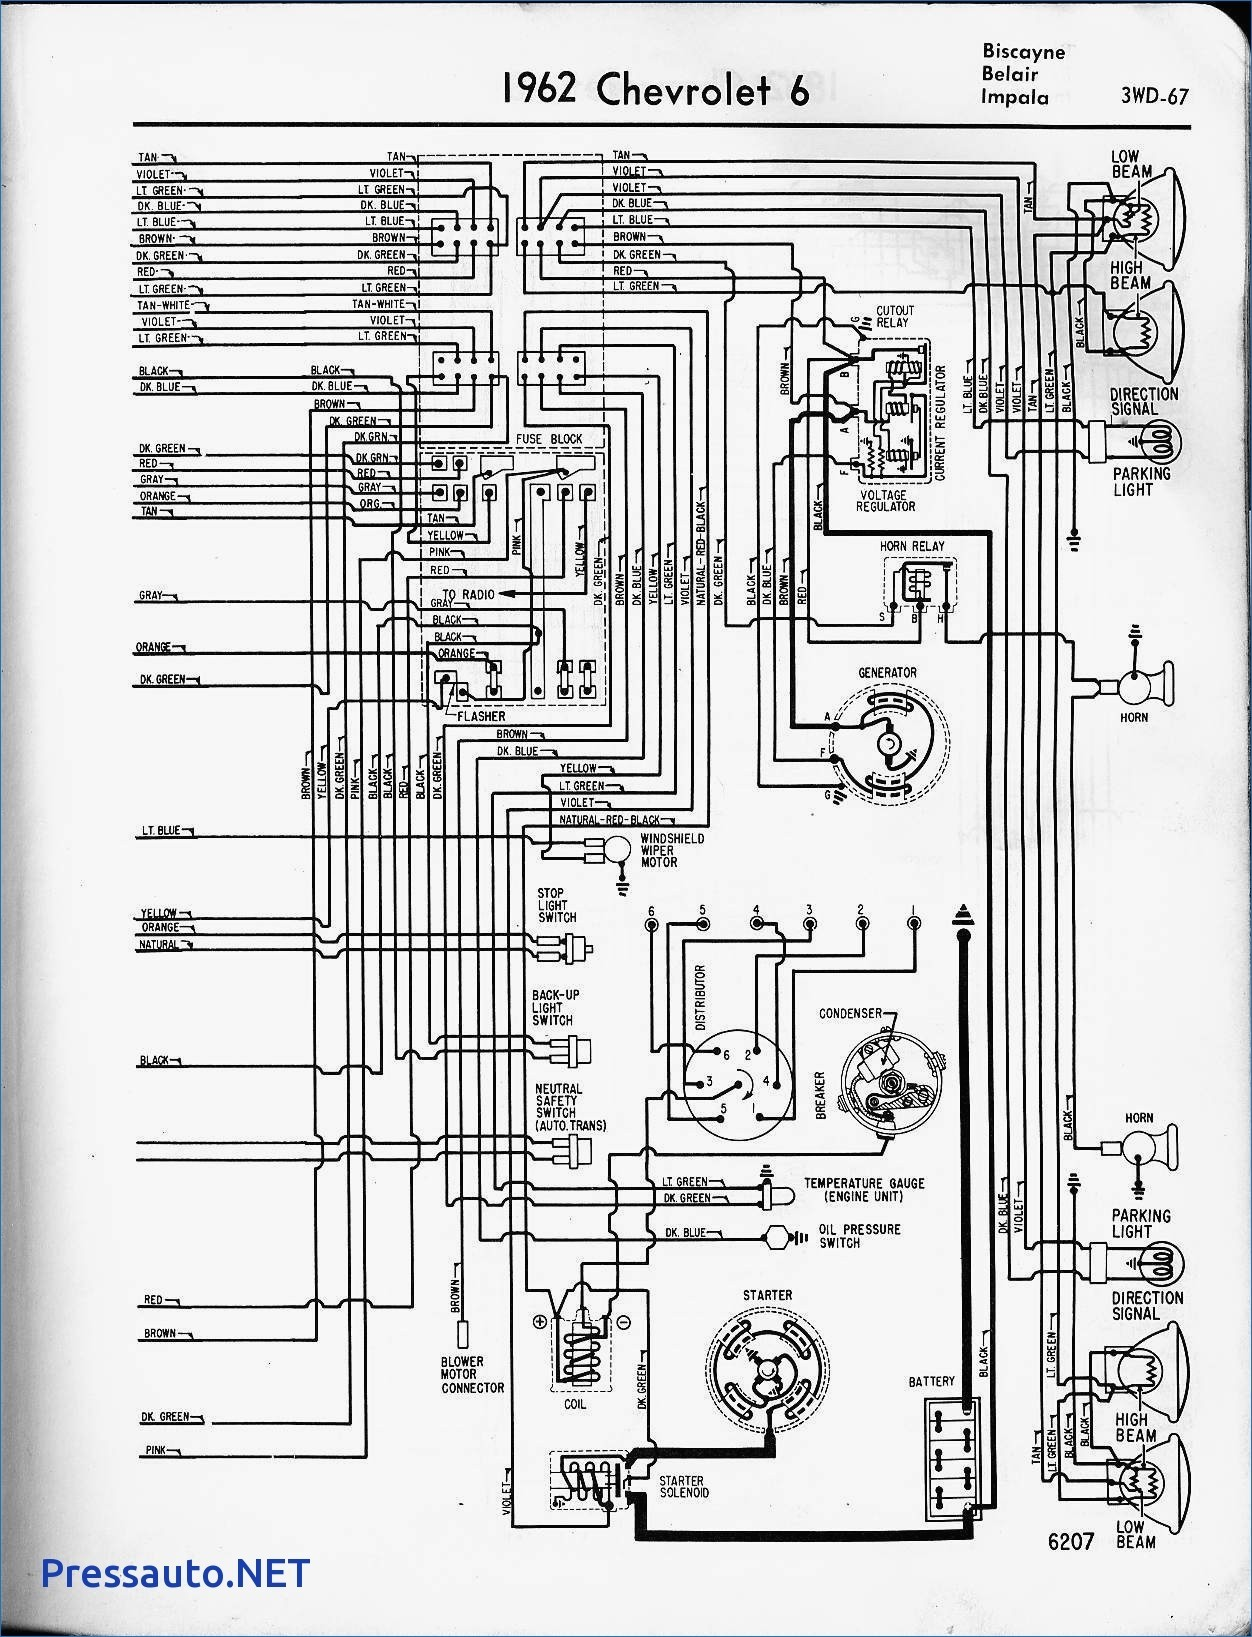 2004 Chevy Impala 3 4 Engine Diagram 1962 Impala Wiring Diagram Switched  12vdc Wiring Data Of